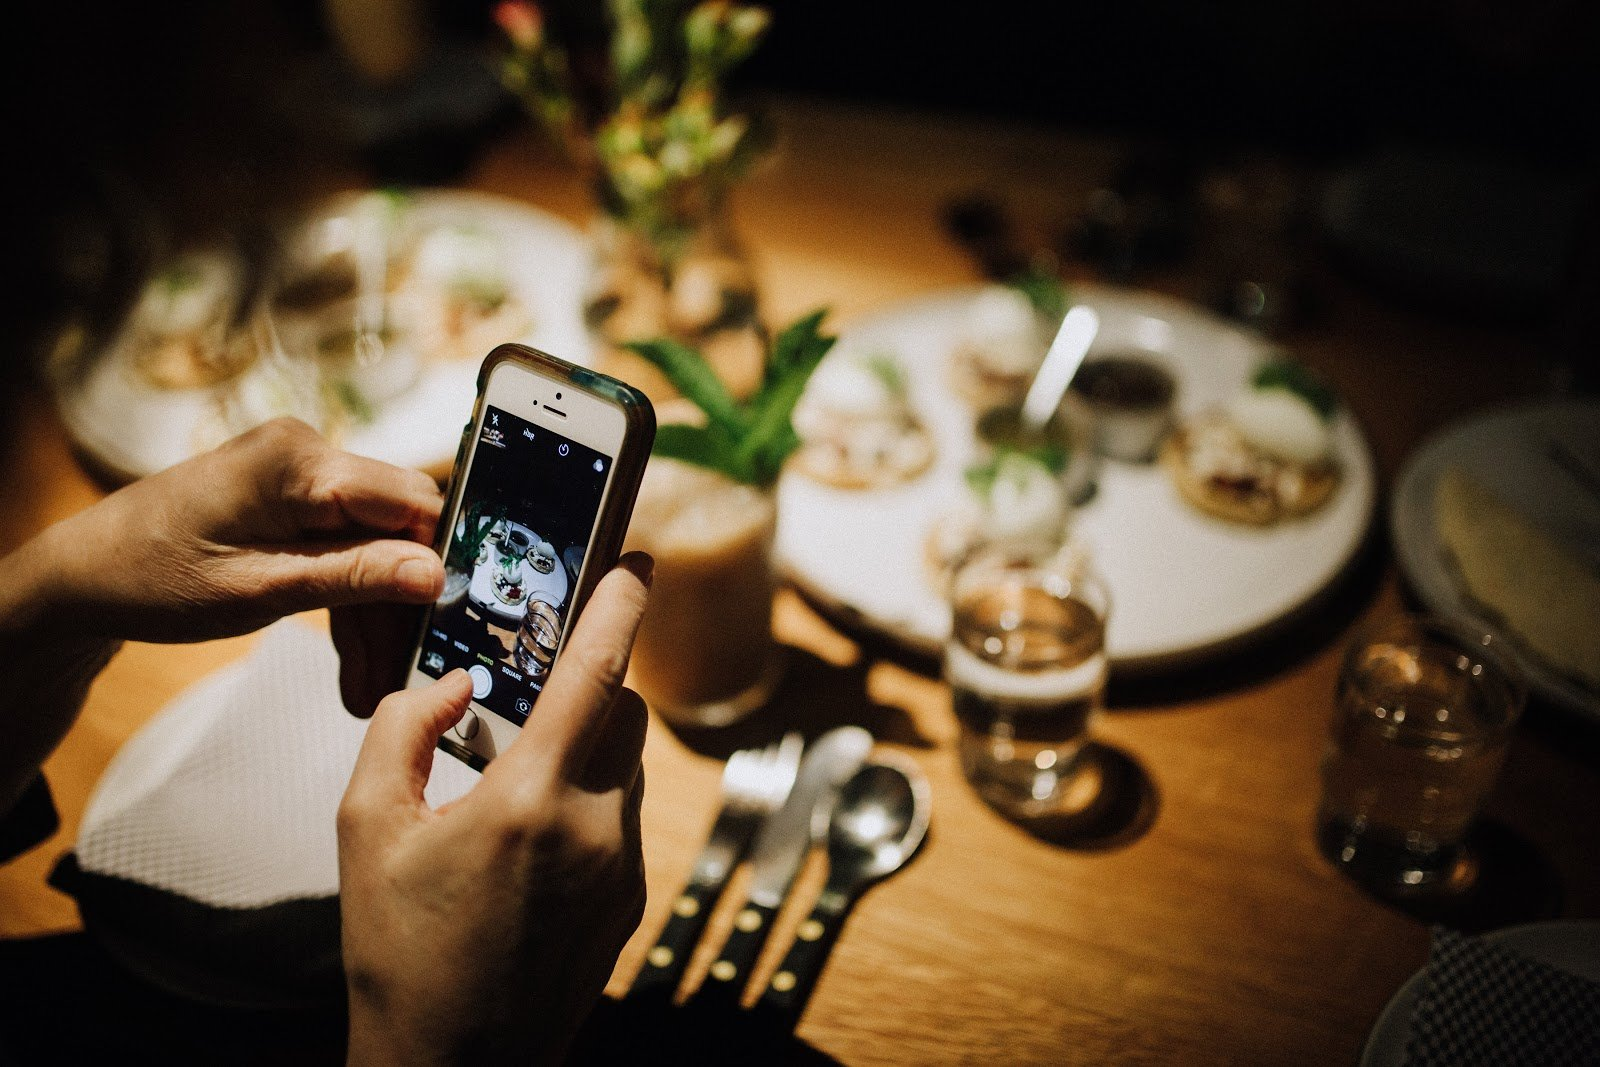 virtual culinary event taking photo of food